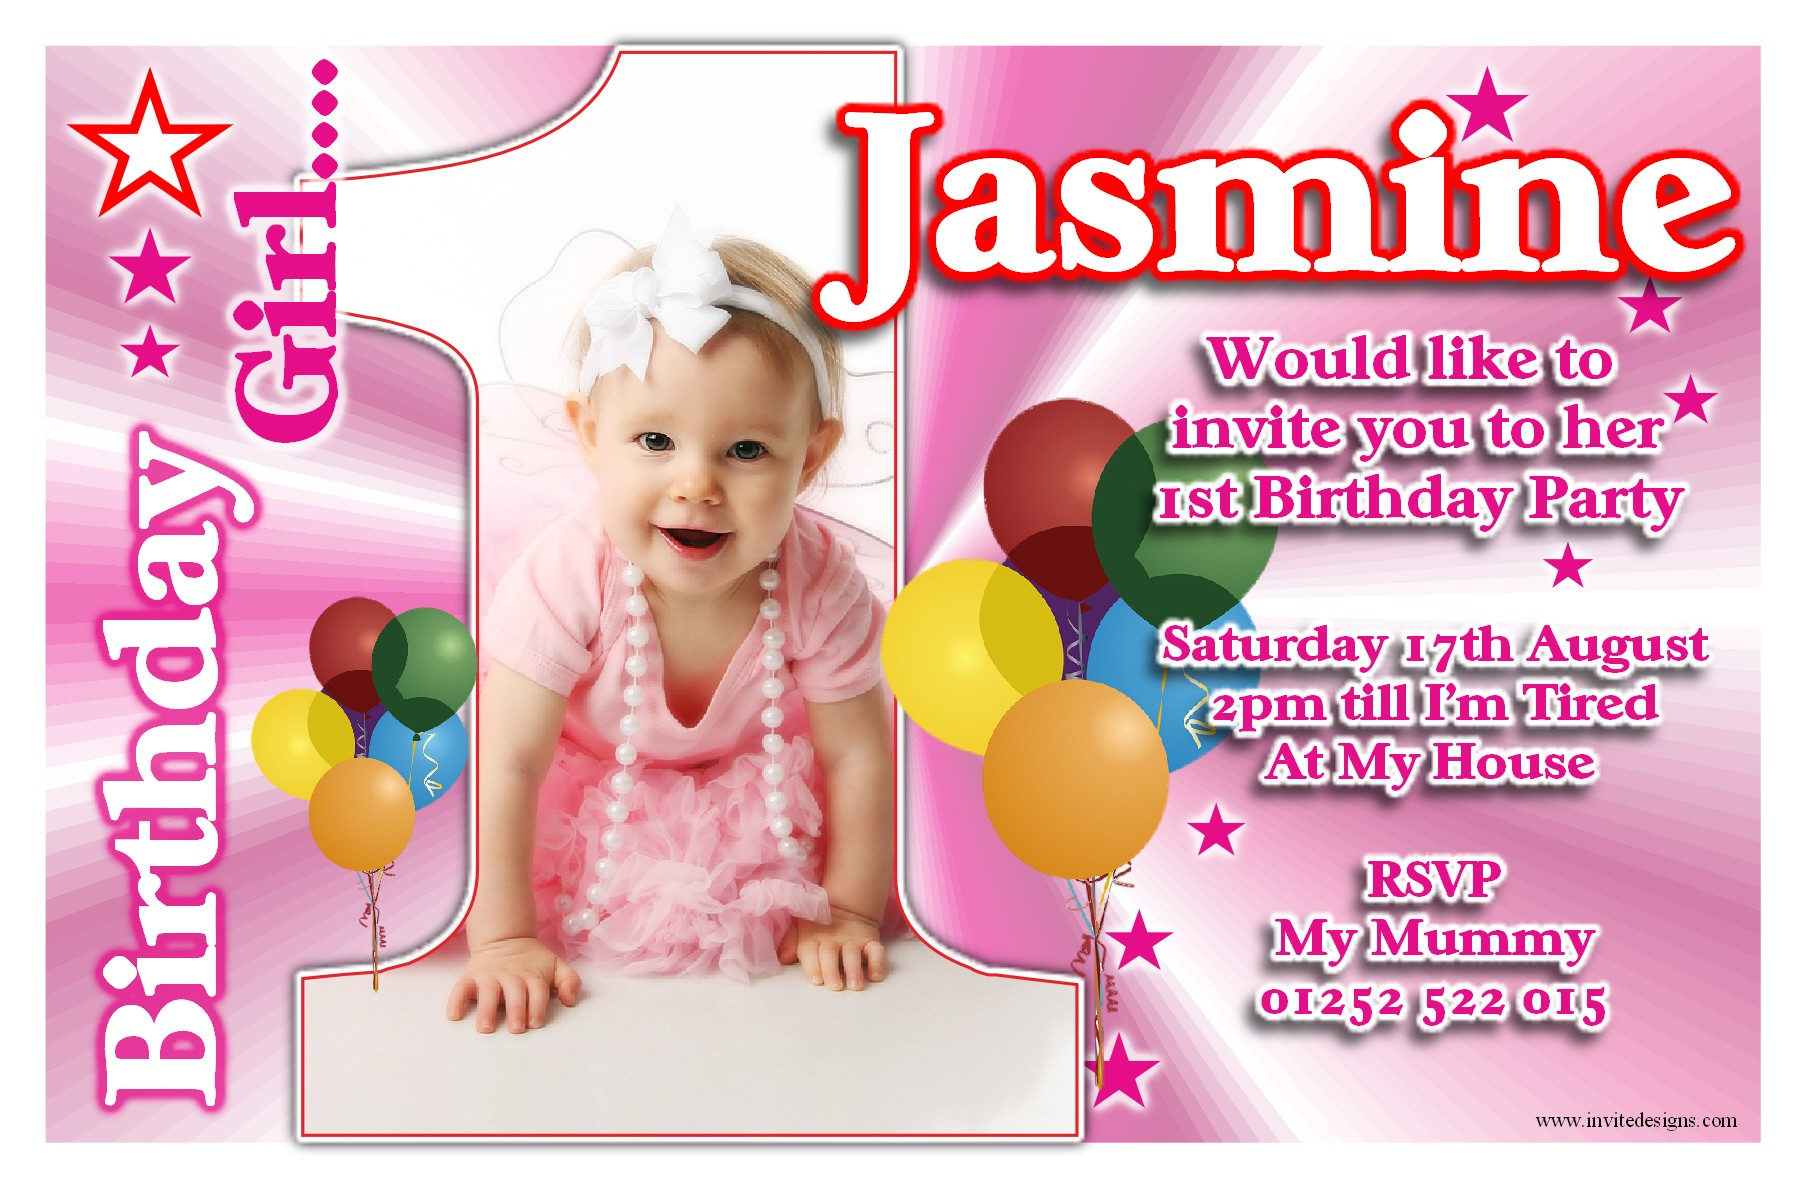 invitation for first birthday of my daughter ; invitation-for-birthday-of-daughter-refrence-first-birthday-party-invitations-girl-of-invitation-for-birthday-of-daughter